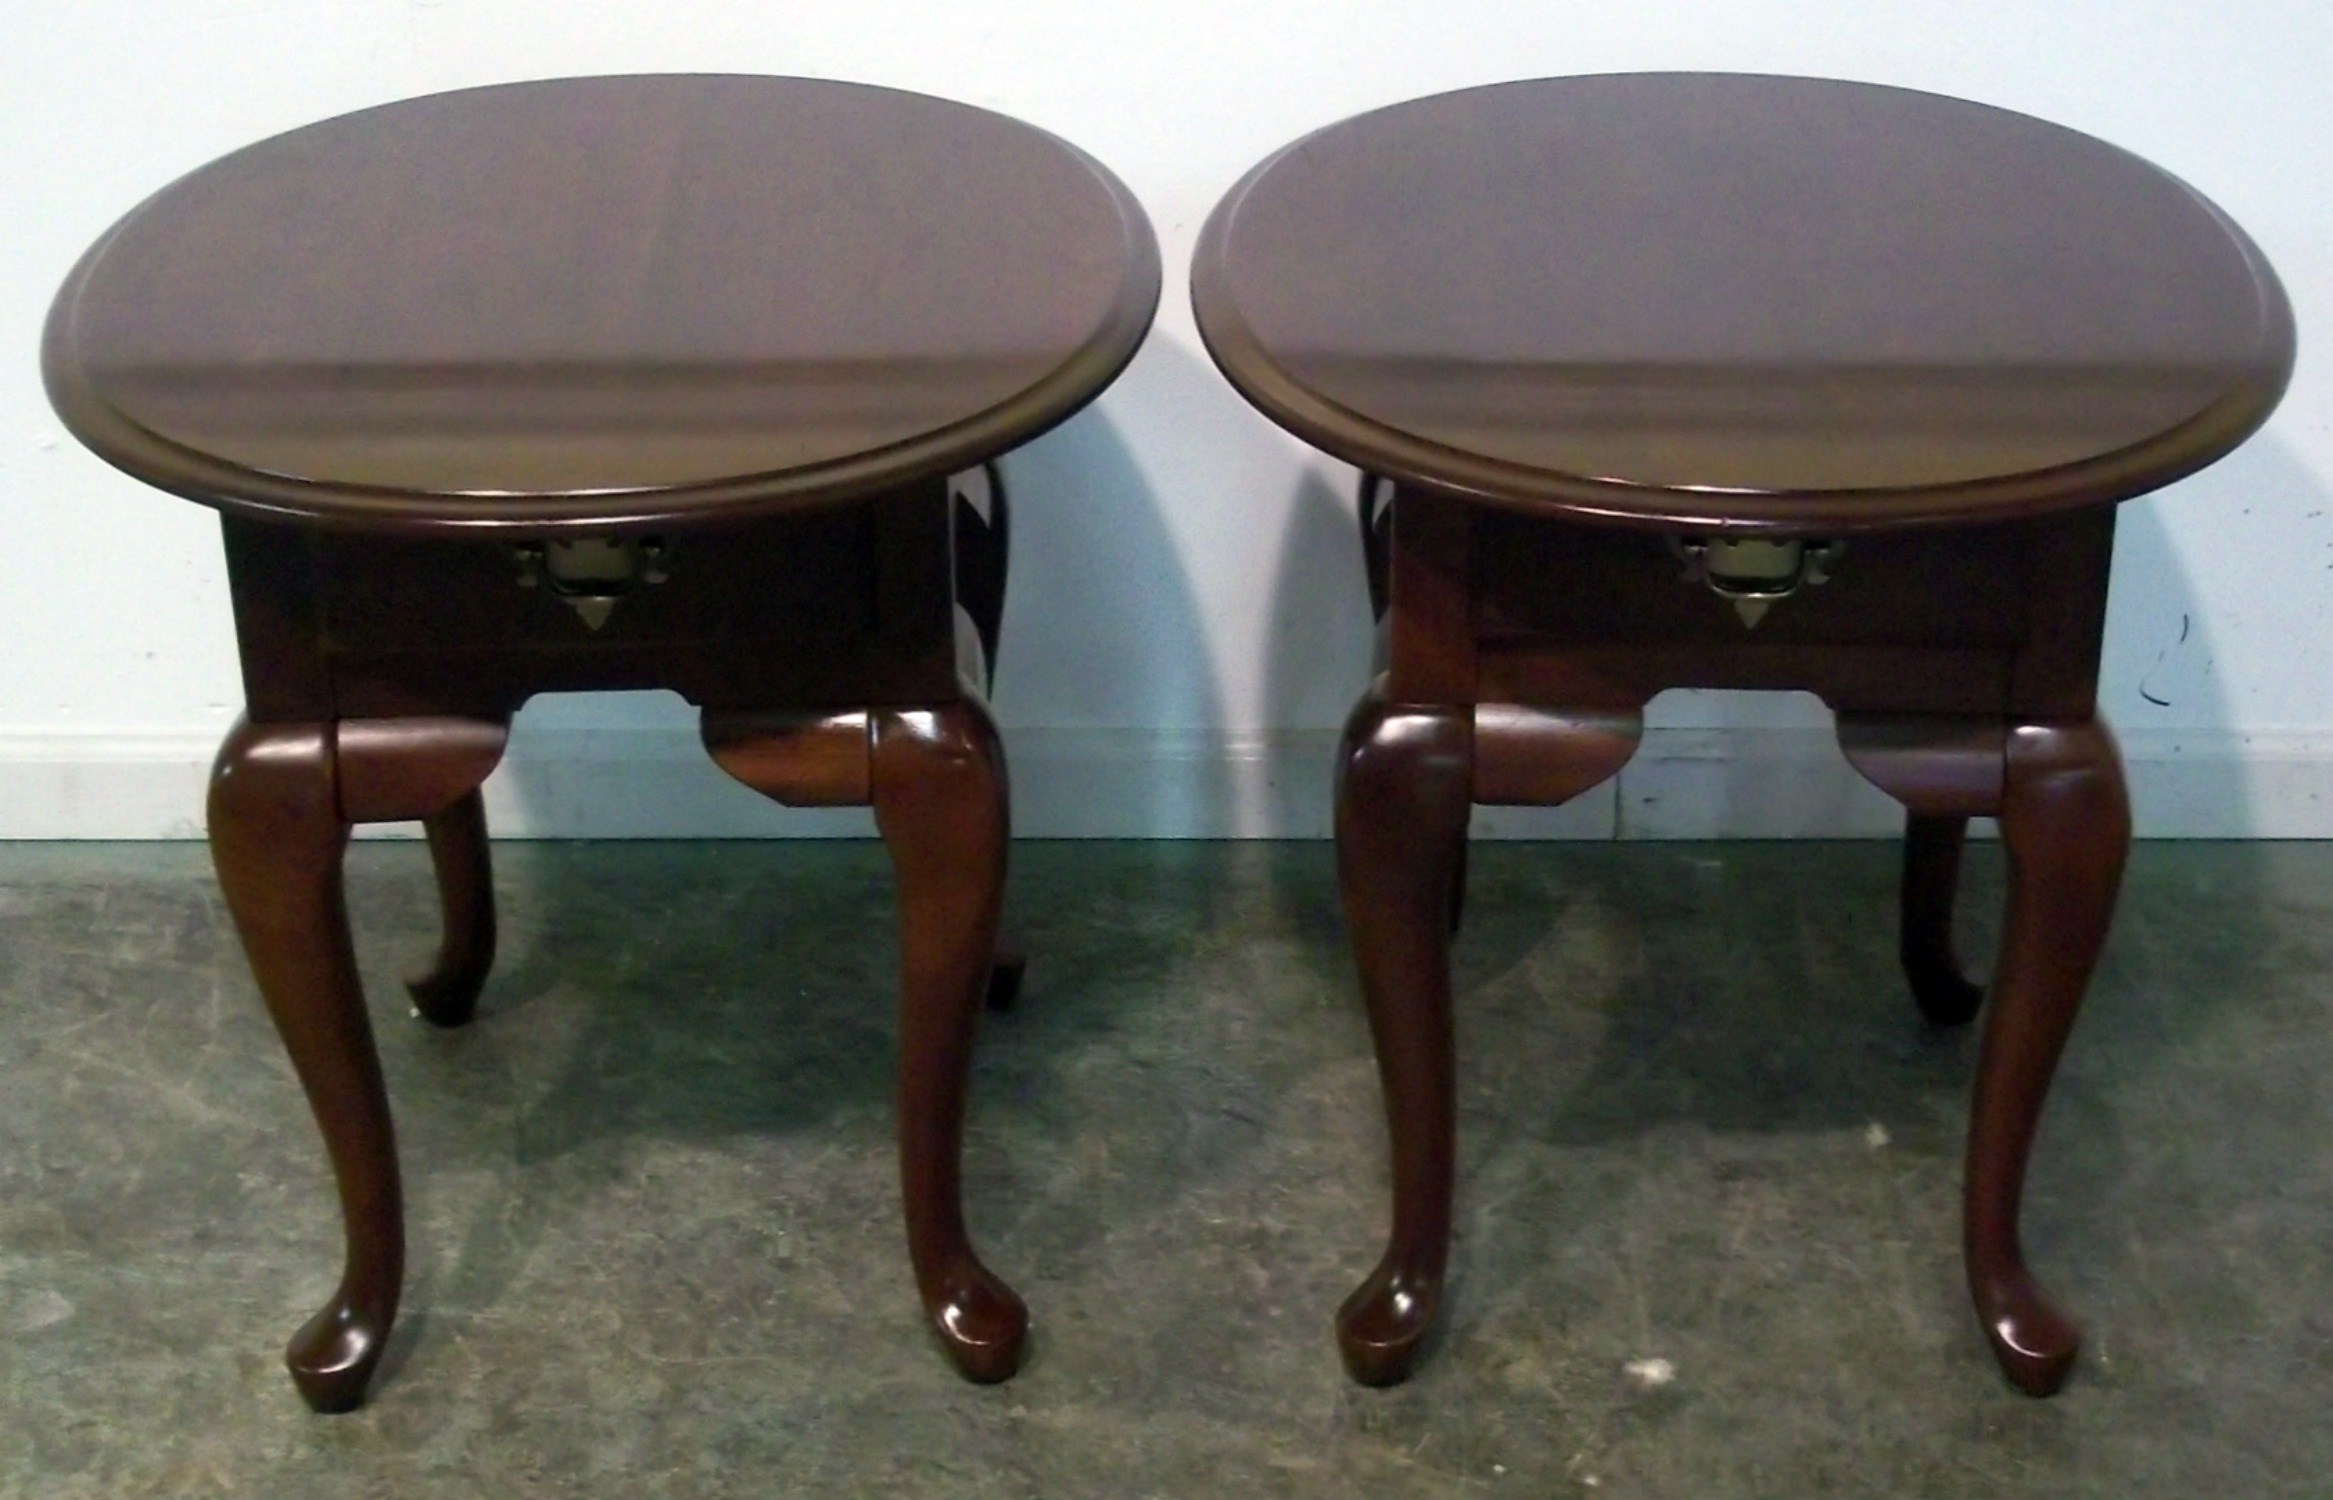 buffet furniture probably super great oval wood end table pair broyhill solid cherry queen anne tables pottery barn ott burl slab coffee usa ashley console sofa simple bedside